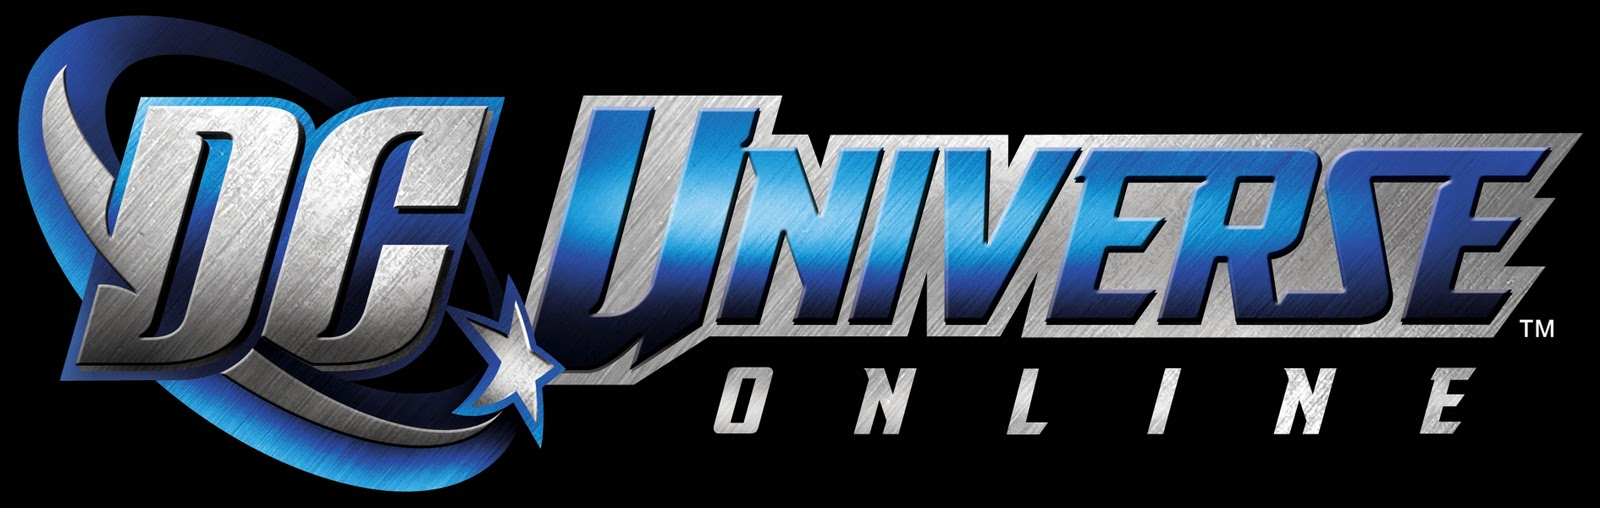 Dc universe online logo characters hd wallpapers hd wallpapers backgrounds photos pictures - Dc characters wallpaper hd ...